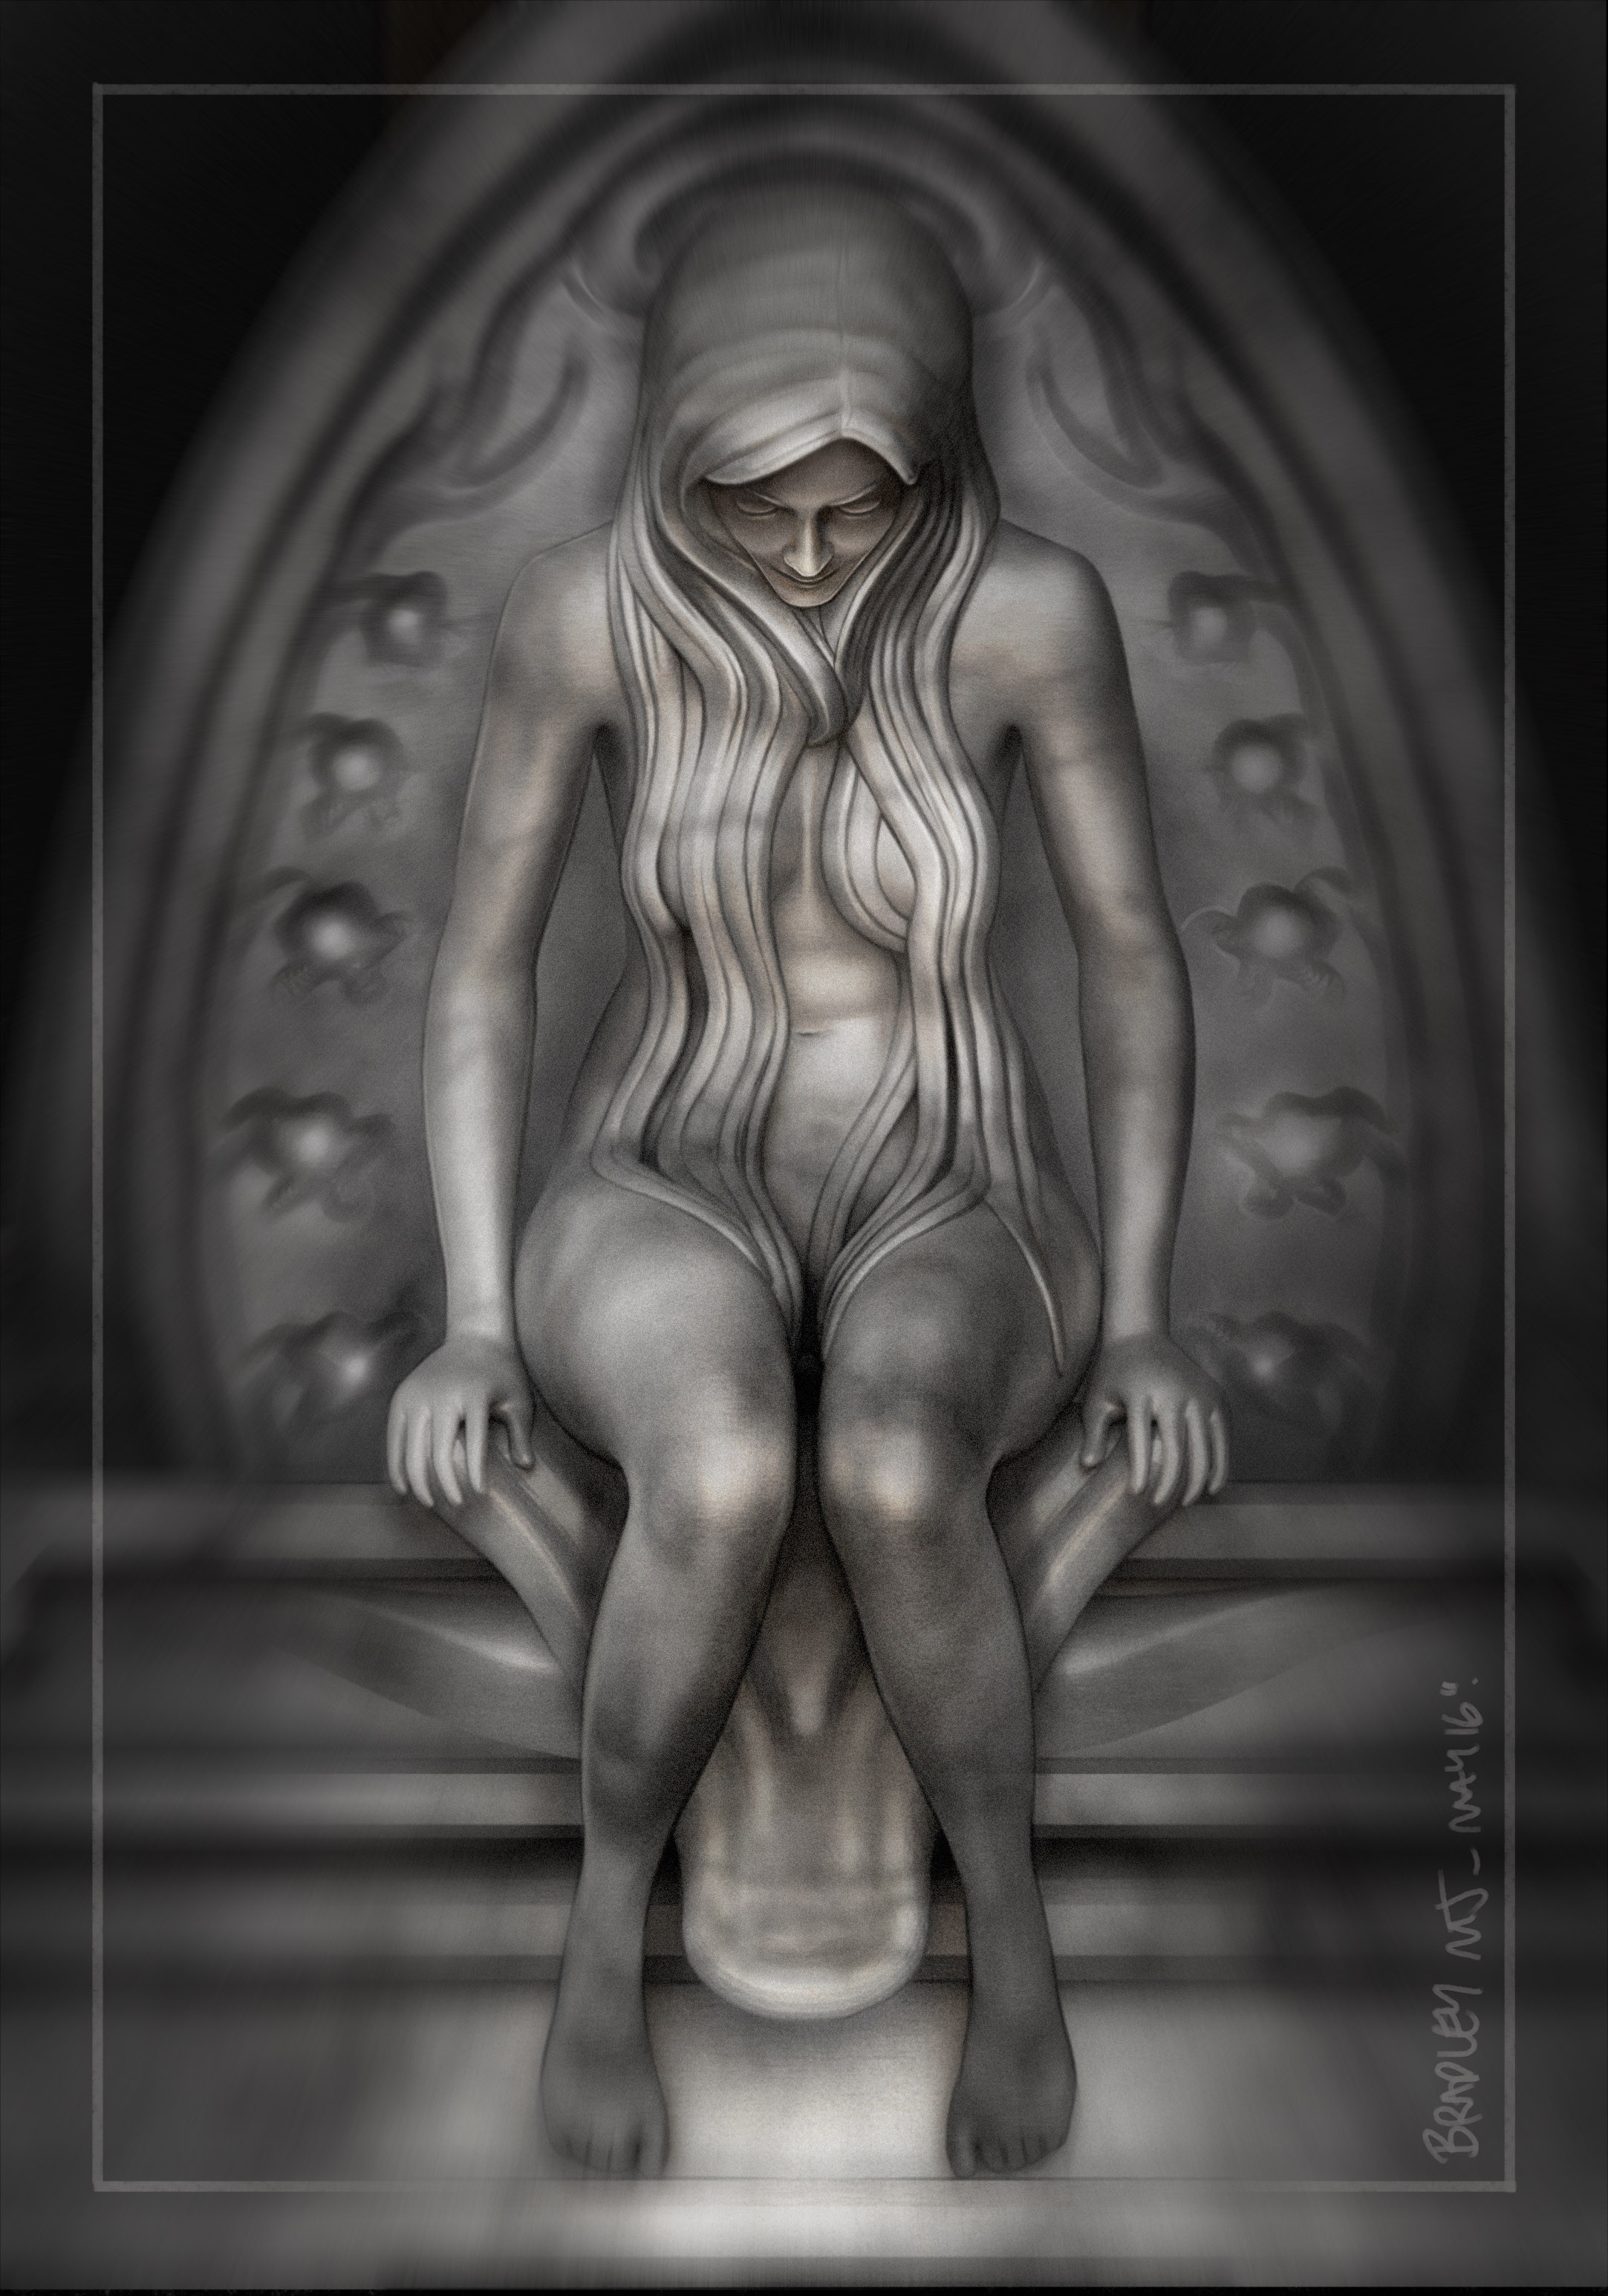 Guardian Angel Architectural Feature_Final Composite render / paint over